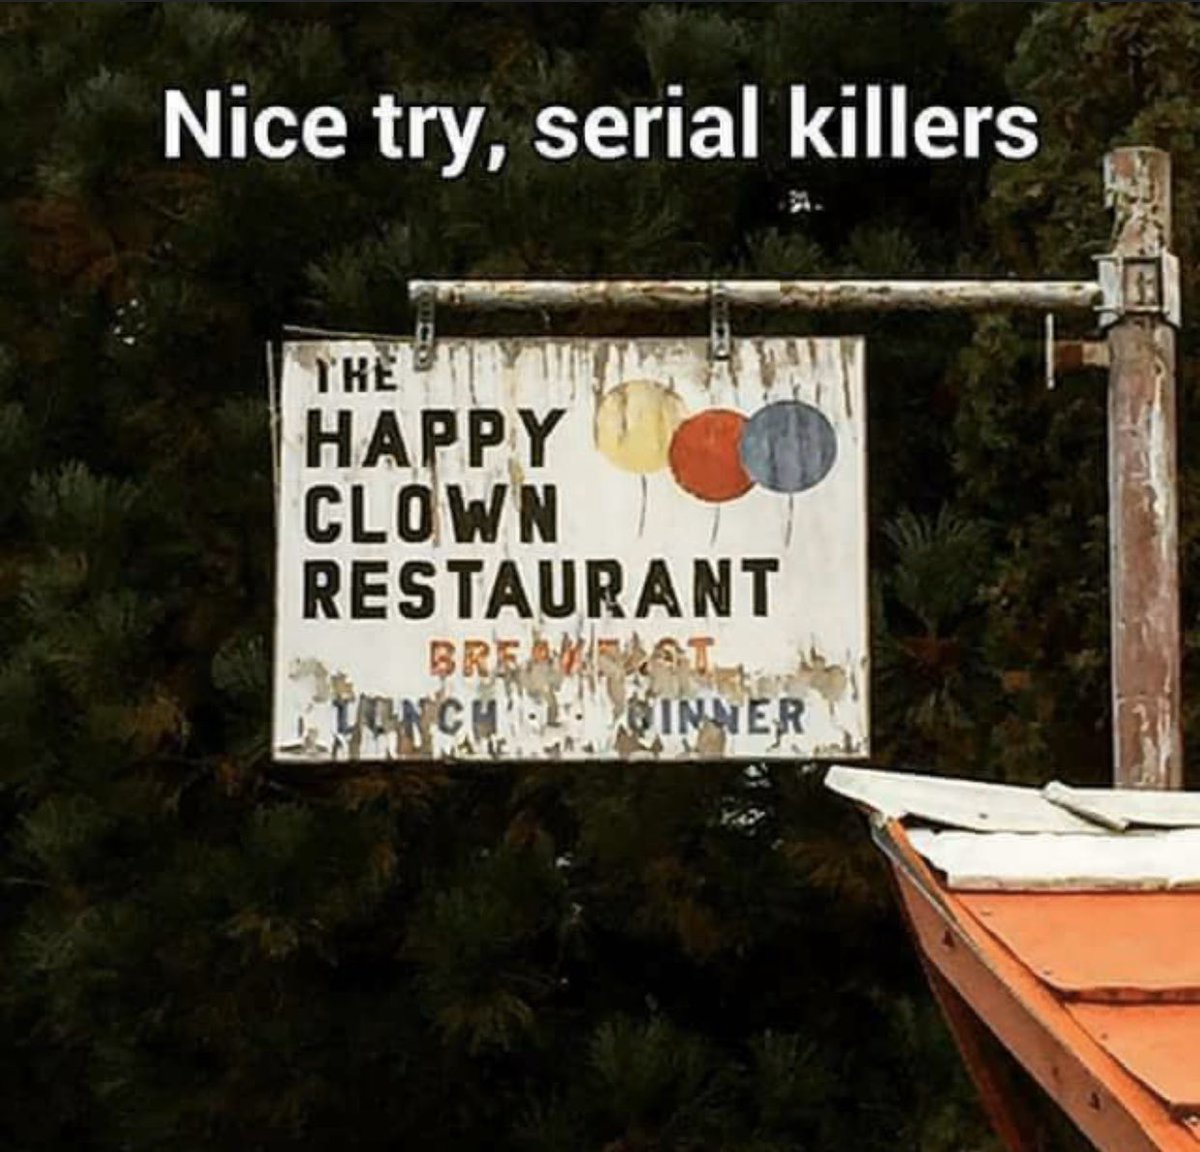 Who doesn't love a happy creepy clown? 🤡 #serialkiller #creepyclowns #iloveclowns #dontgetmurdered